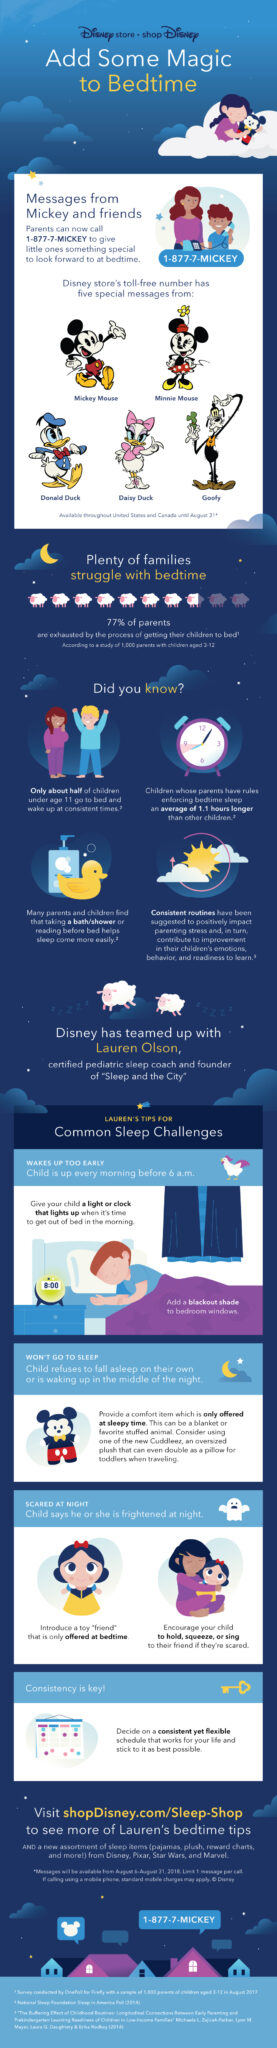 Tips to overcome common sleep problems and new Disney character Calls for bedtime.